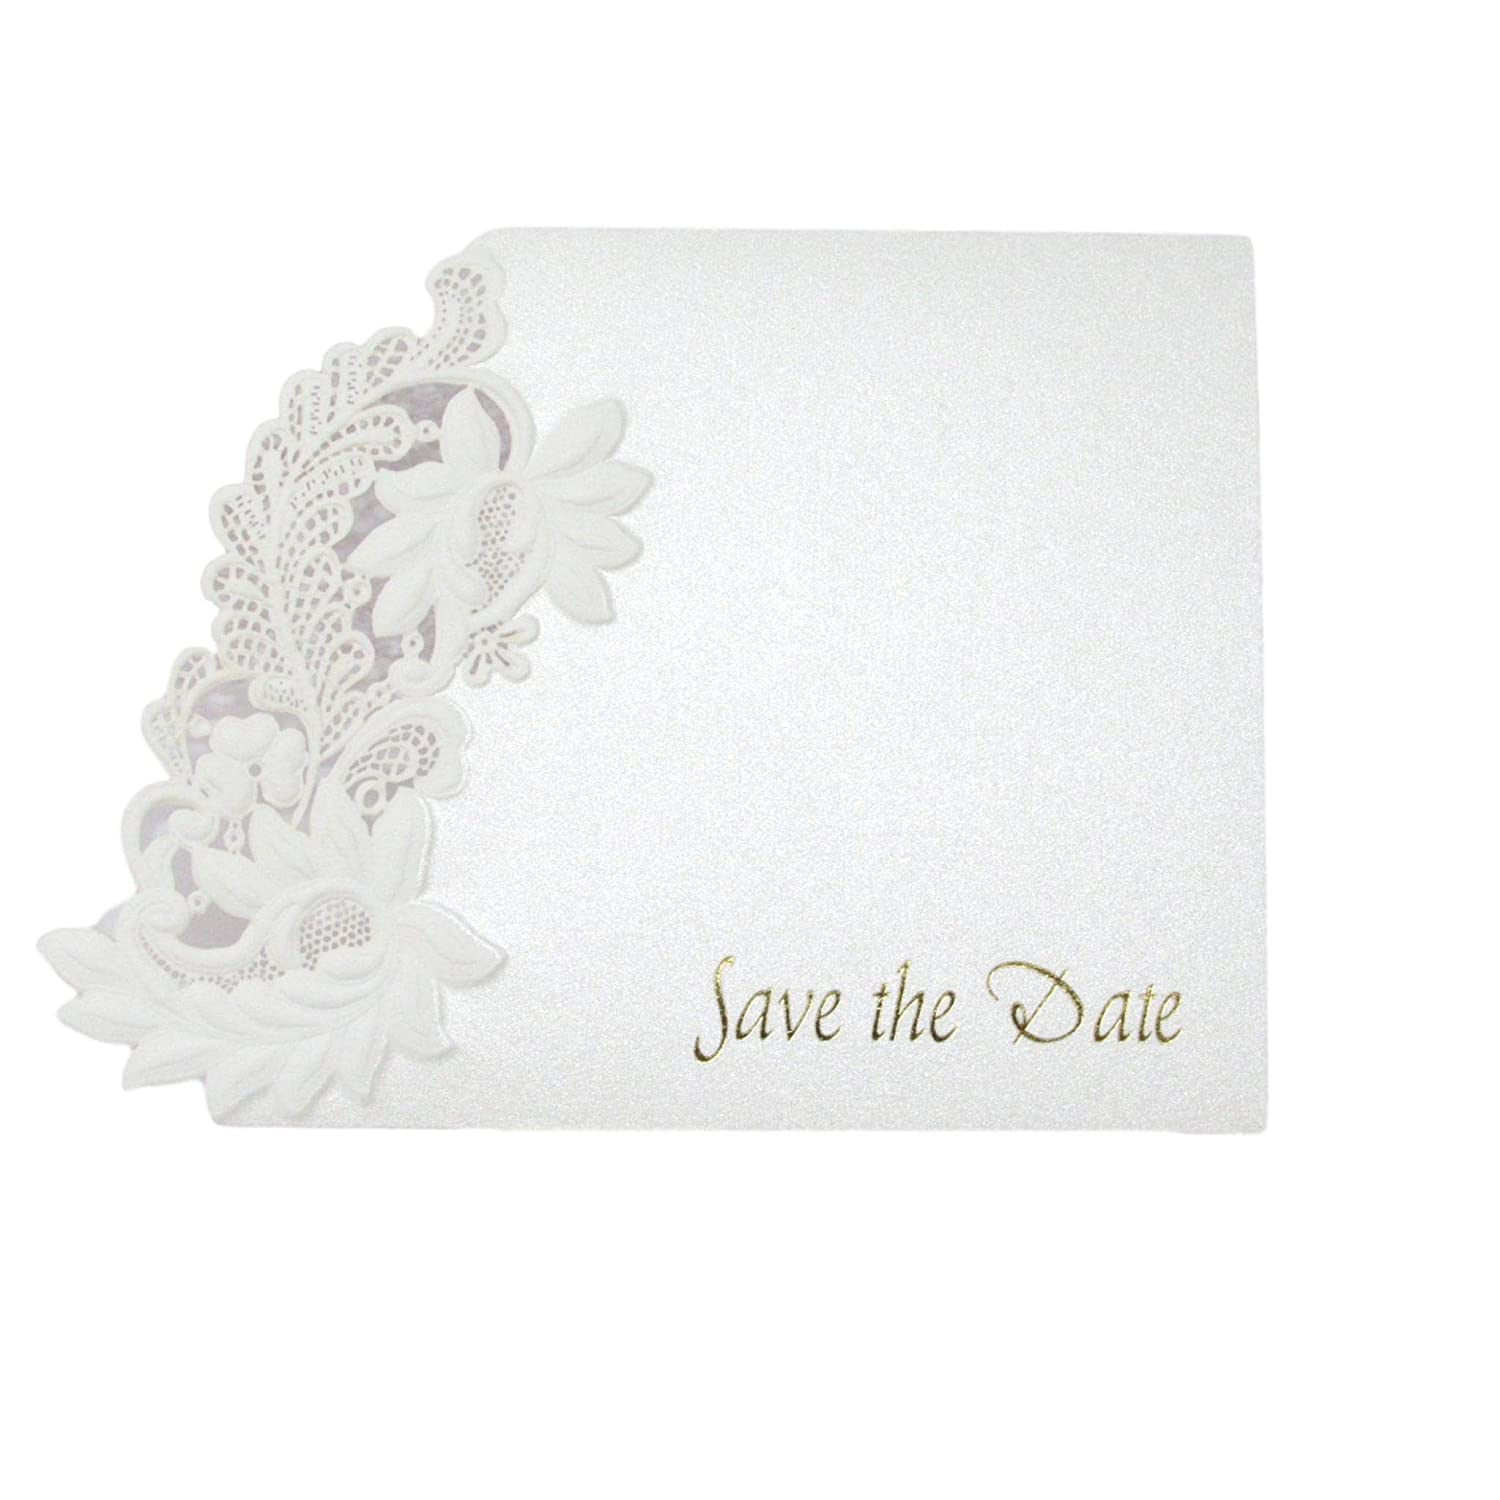 RSVP x 10 Ivory Floral Embossed Laser Cut Wedding Invitations Pockets and Stationery Beautiful Design